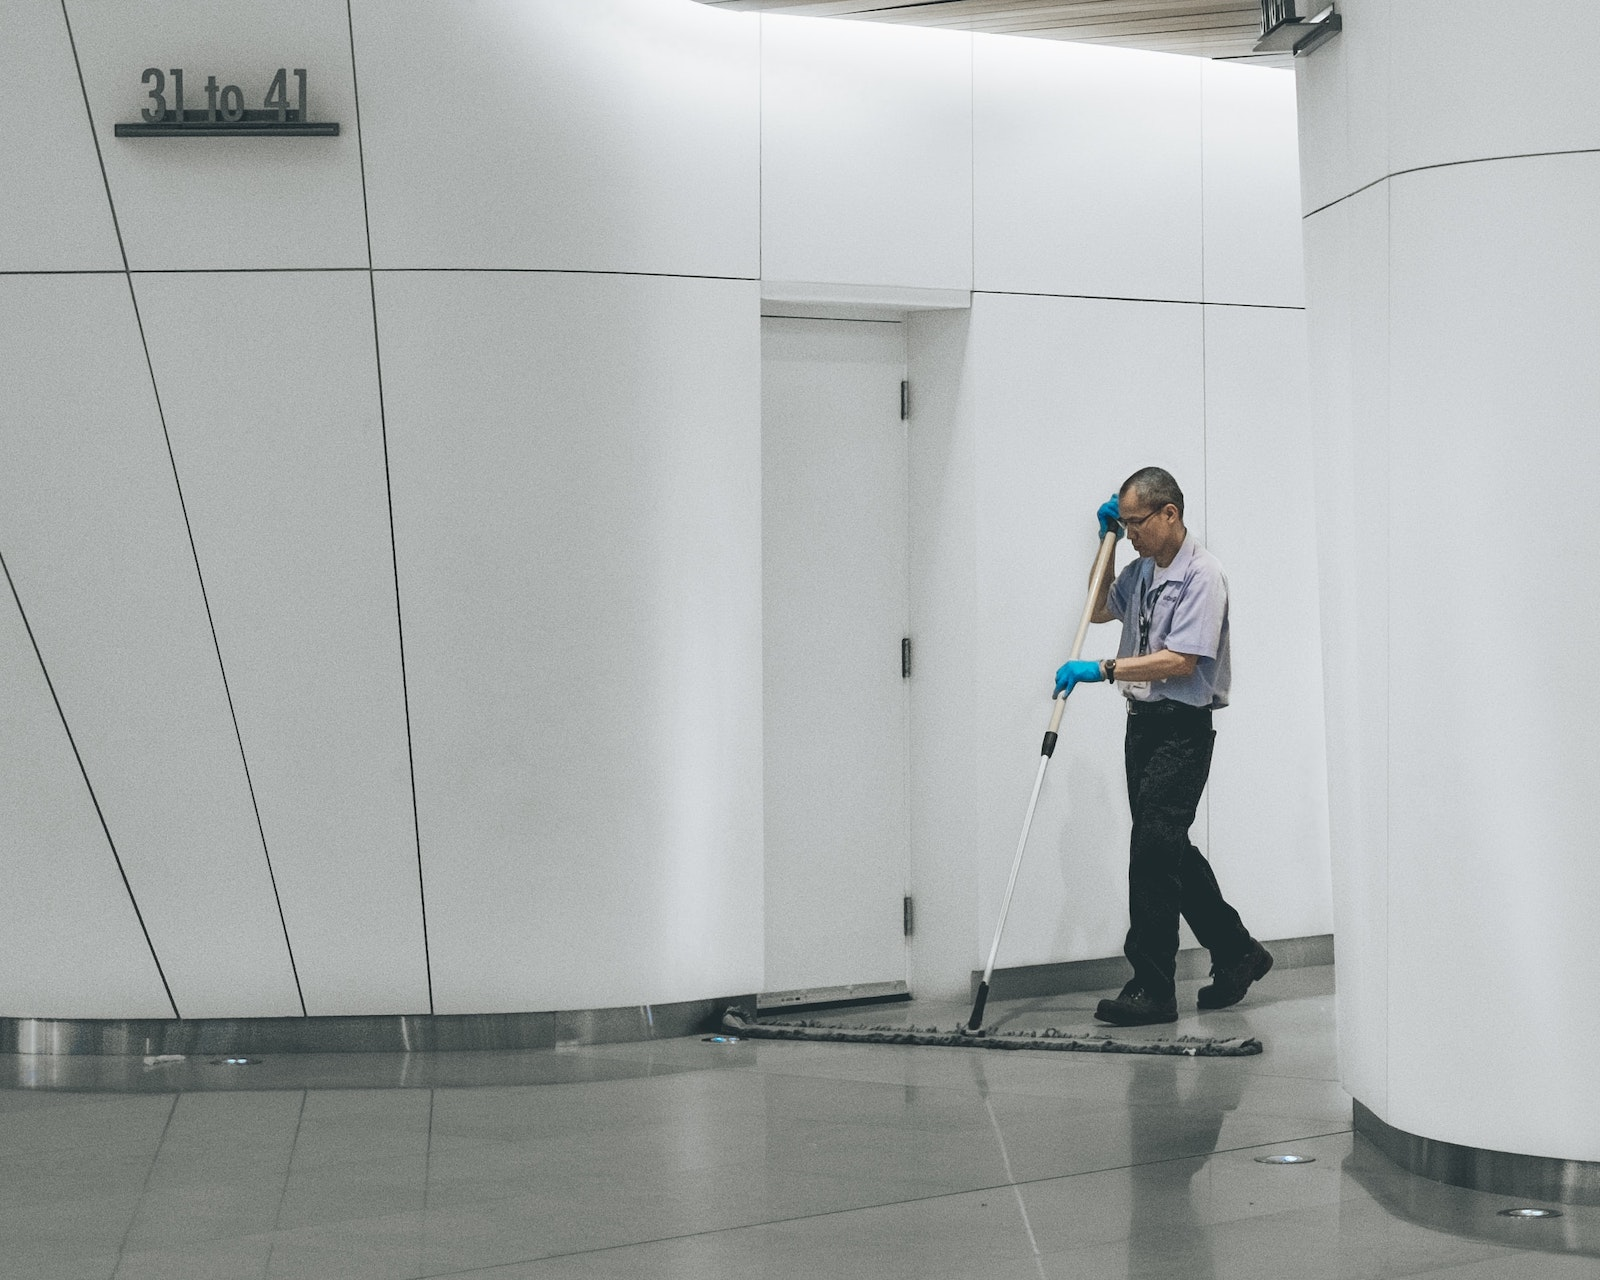 cleaning janitor